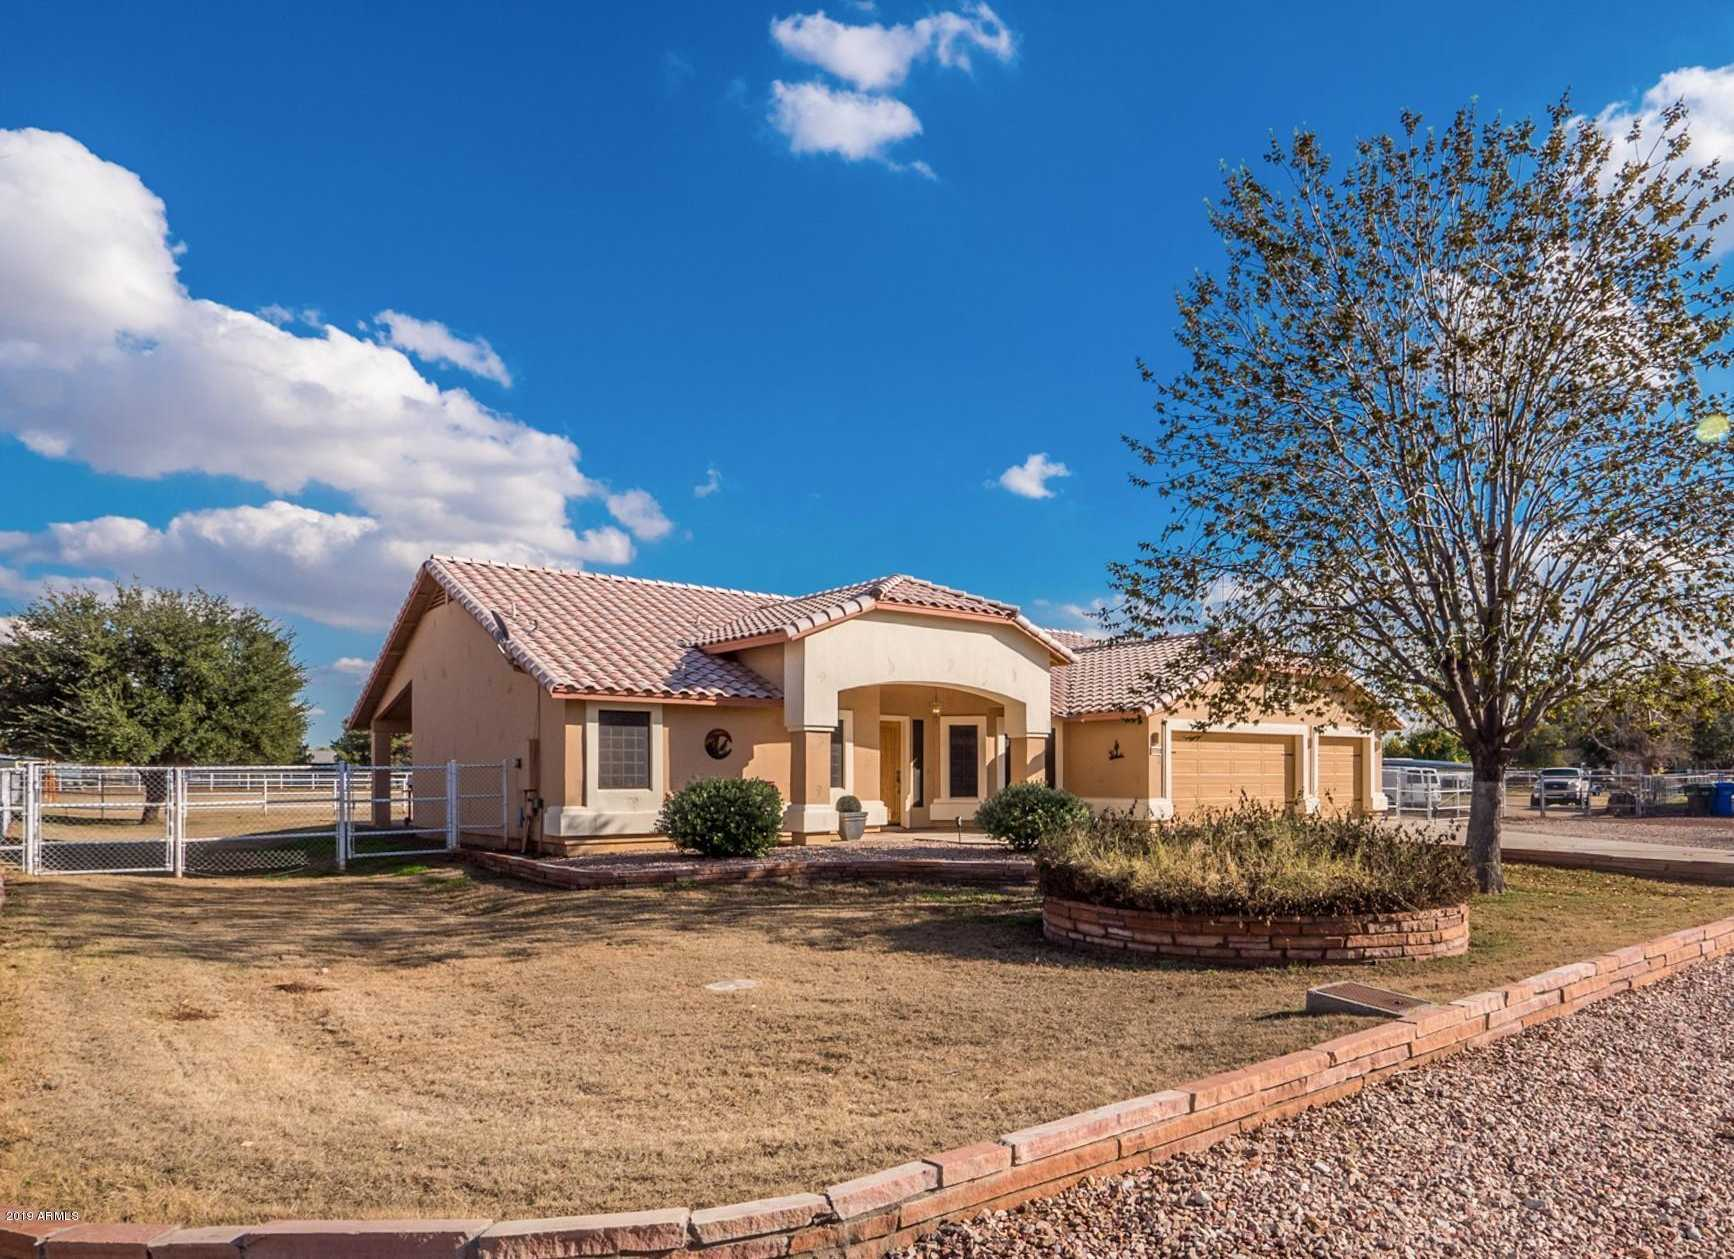 $490,000 - 4Br/2Ba - Home for Sale in Thoroughbred Farms 5, Glendale